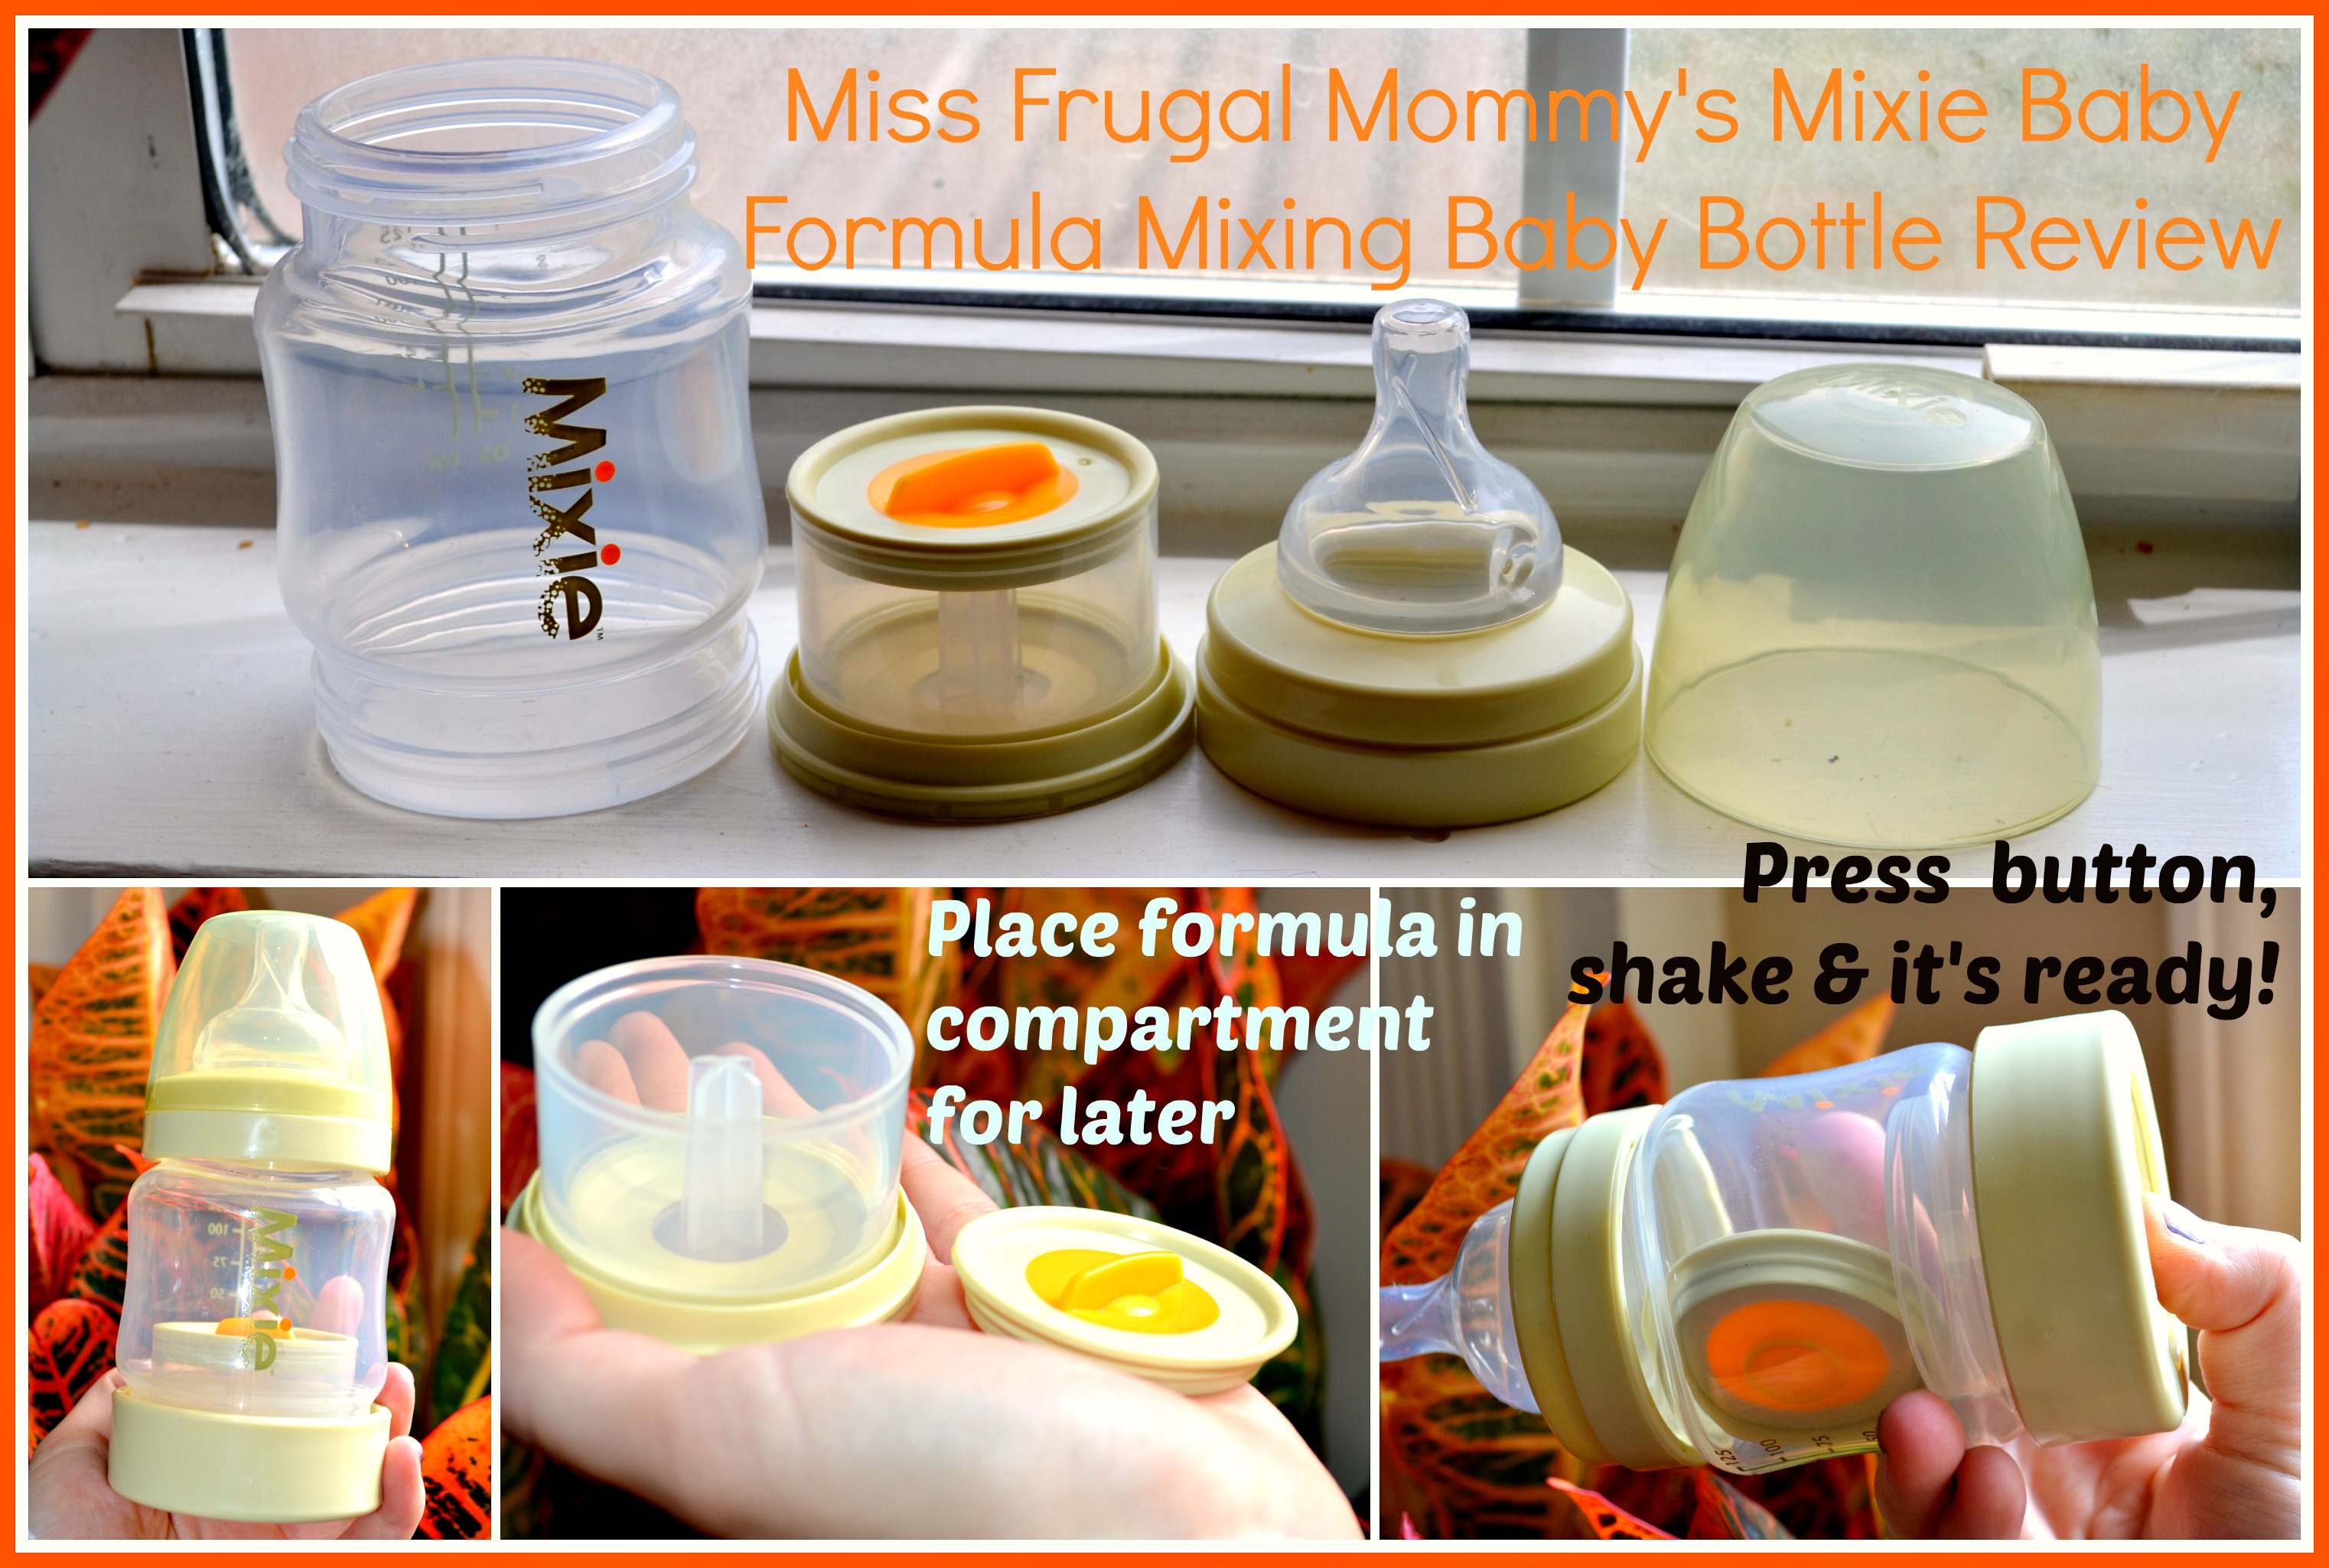 exederm Baby Skin Products & Mixie Bottle Review (Getting Ready For Baby Gift Guide)